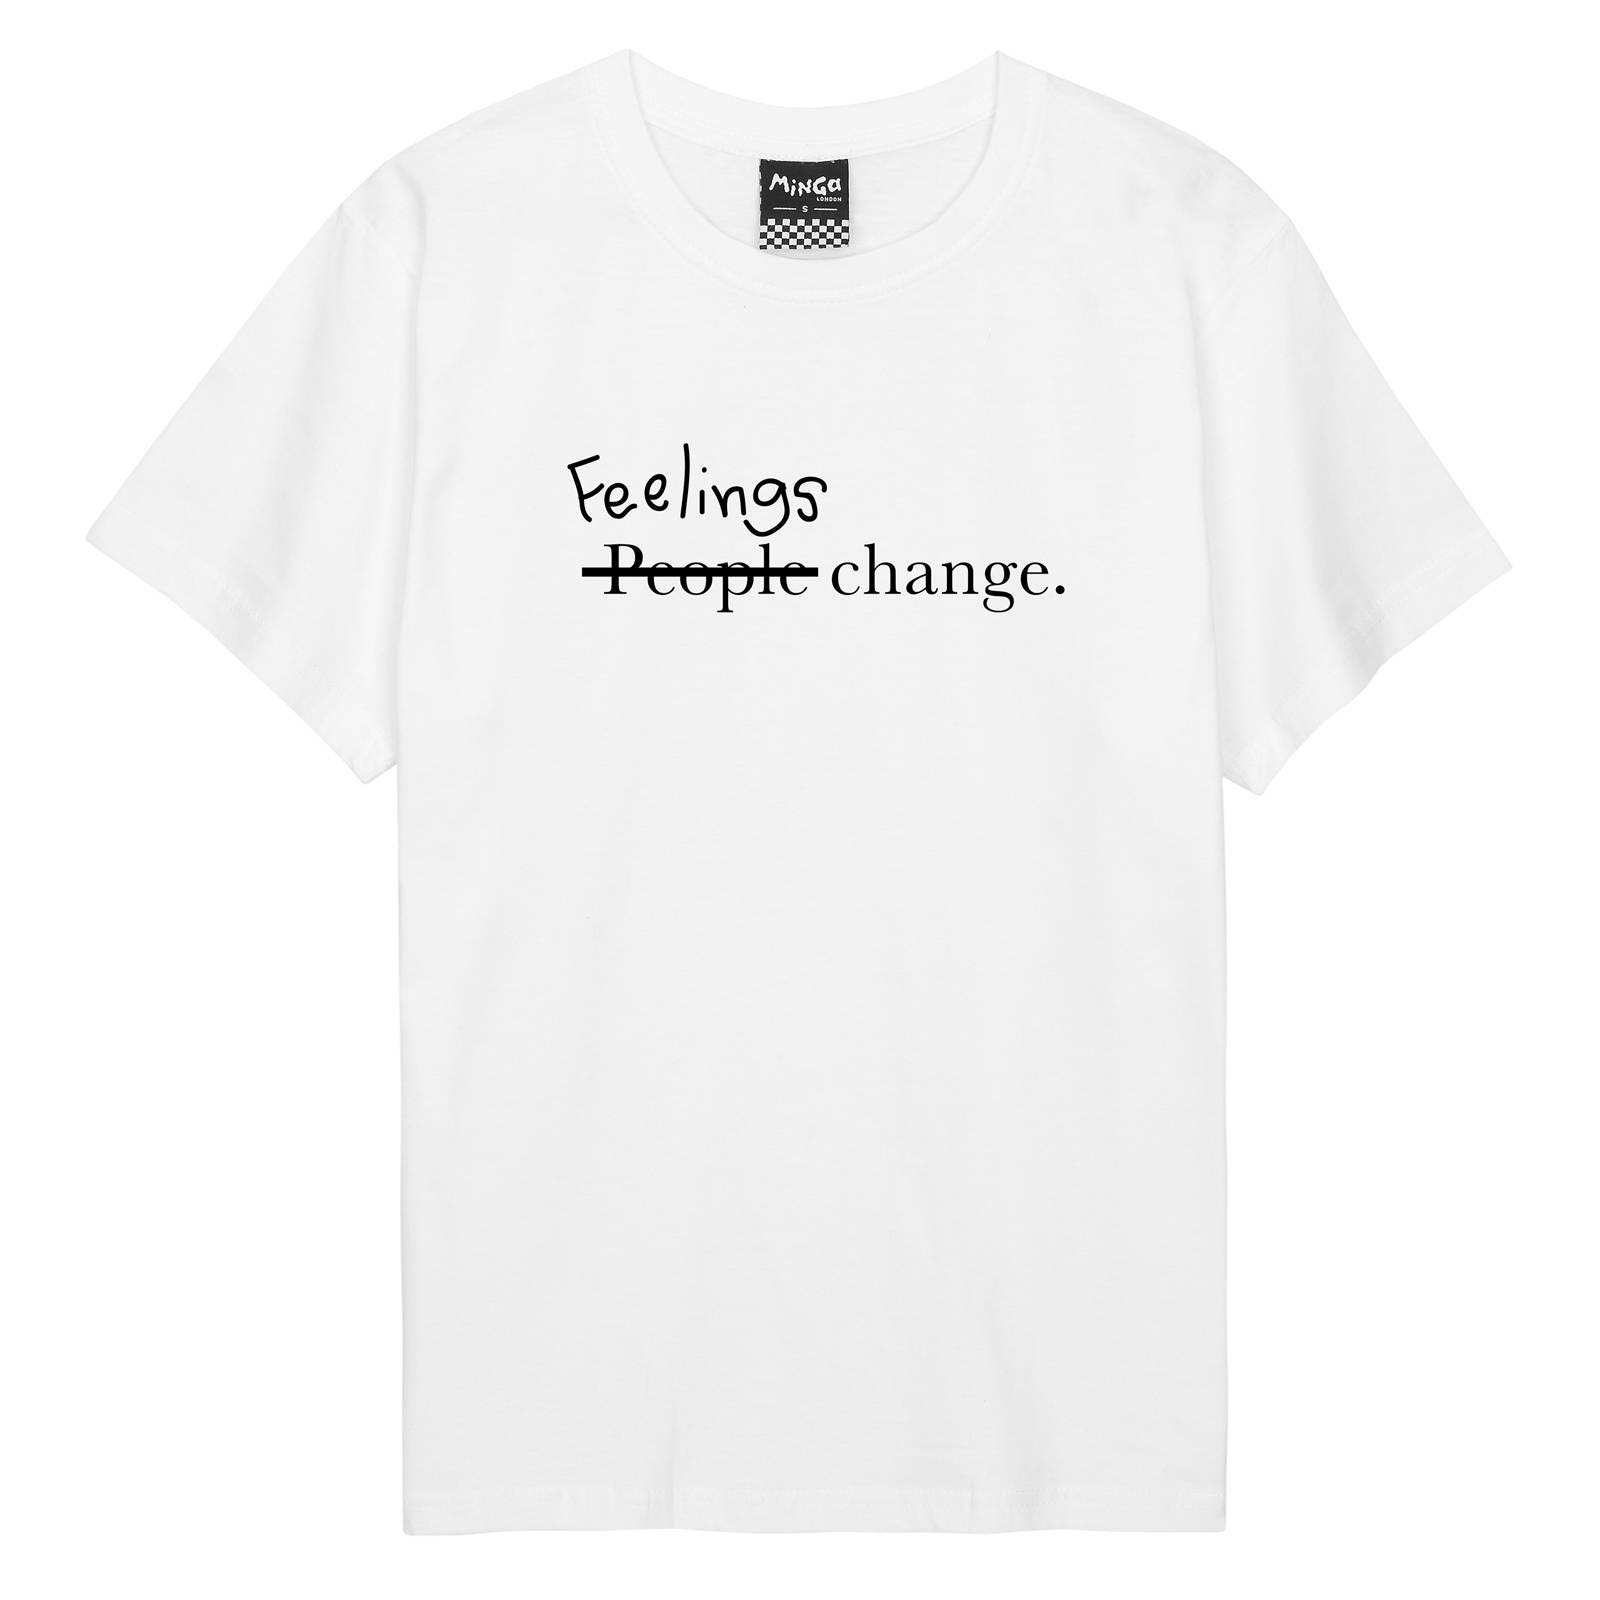 Shirts With Quotes Tumblr Bcd Tofu House